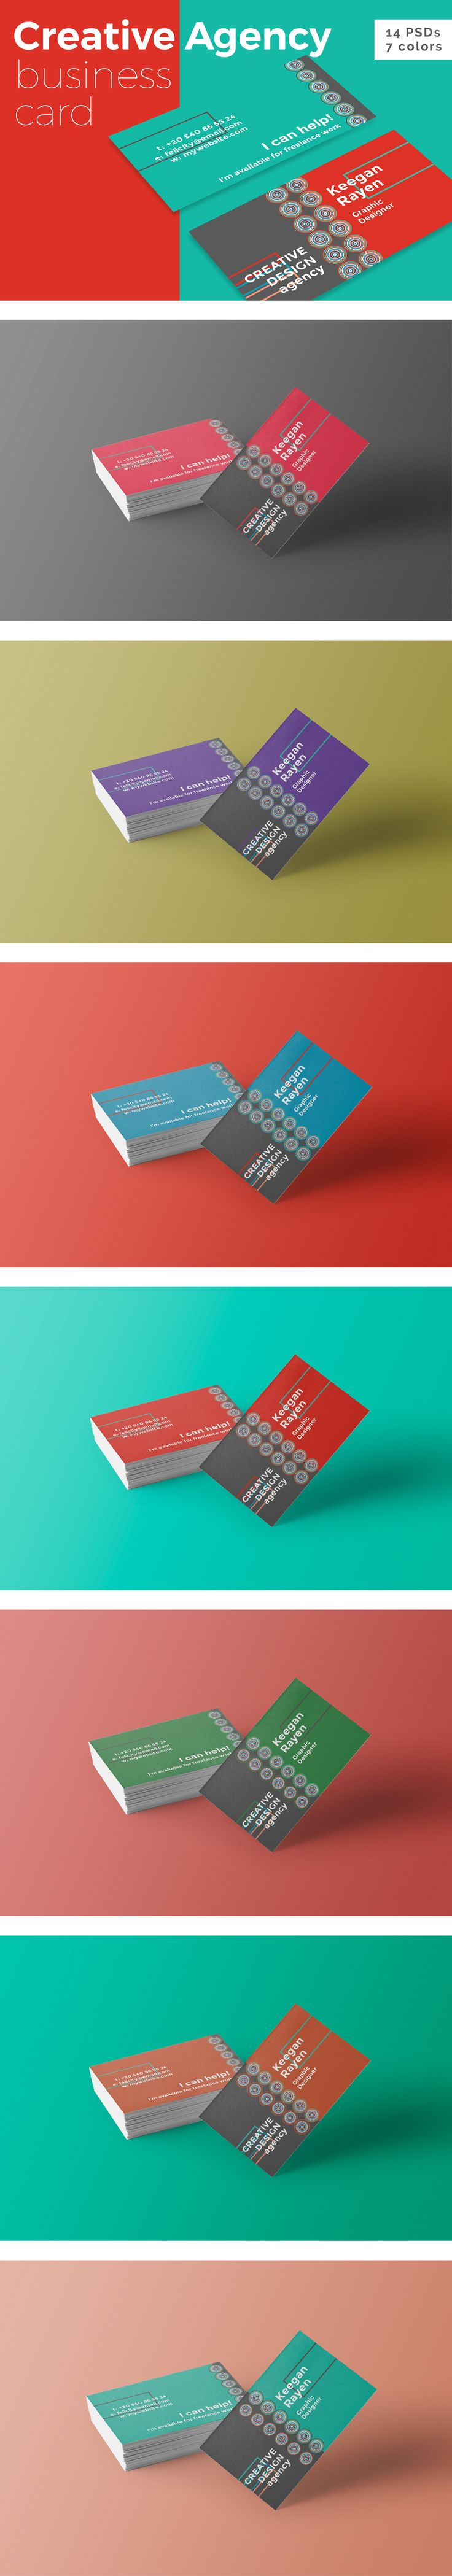 Creative Design Agency Business Card